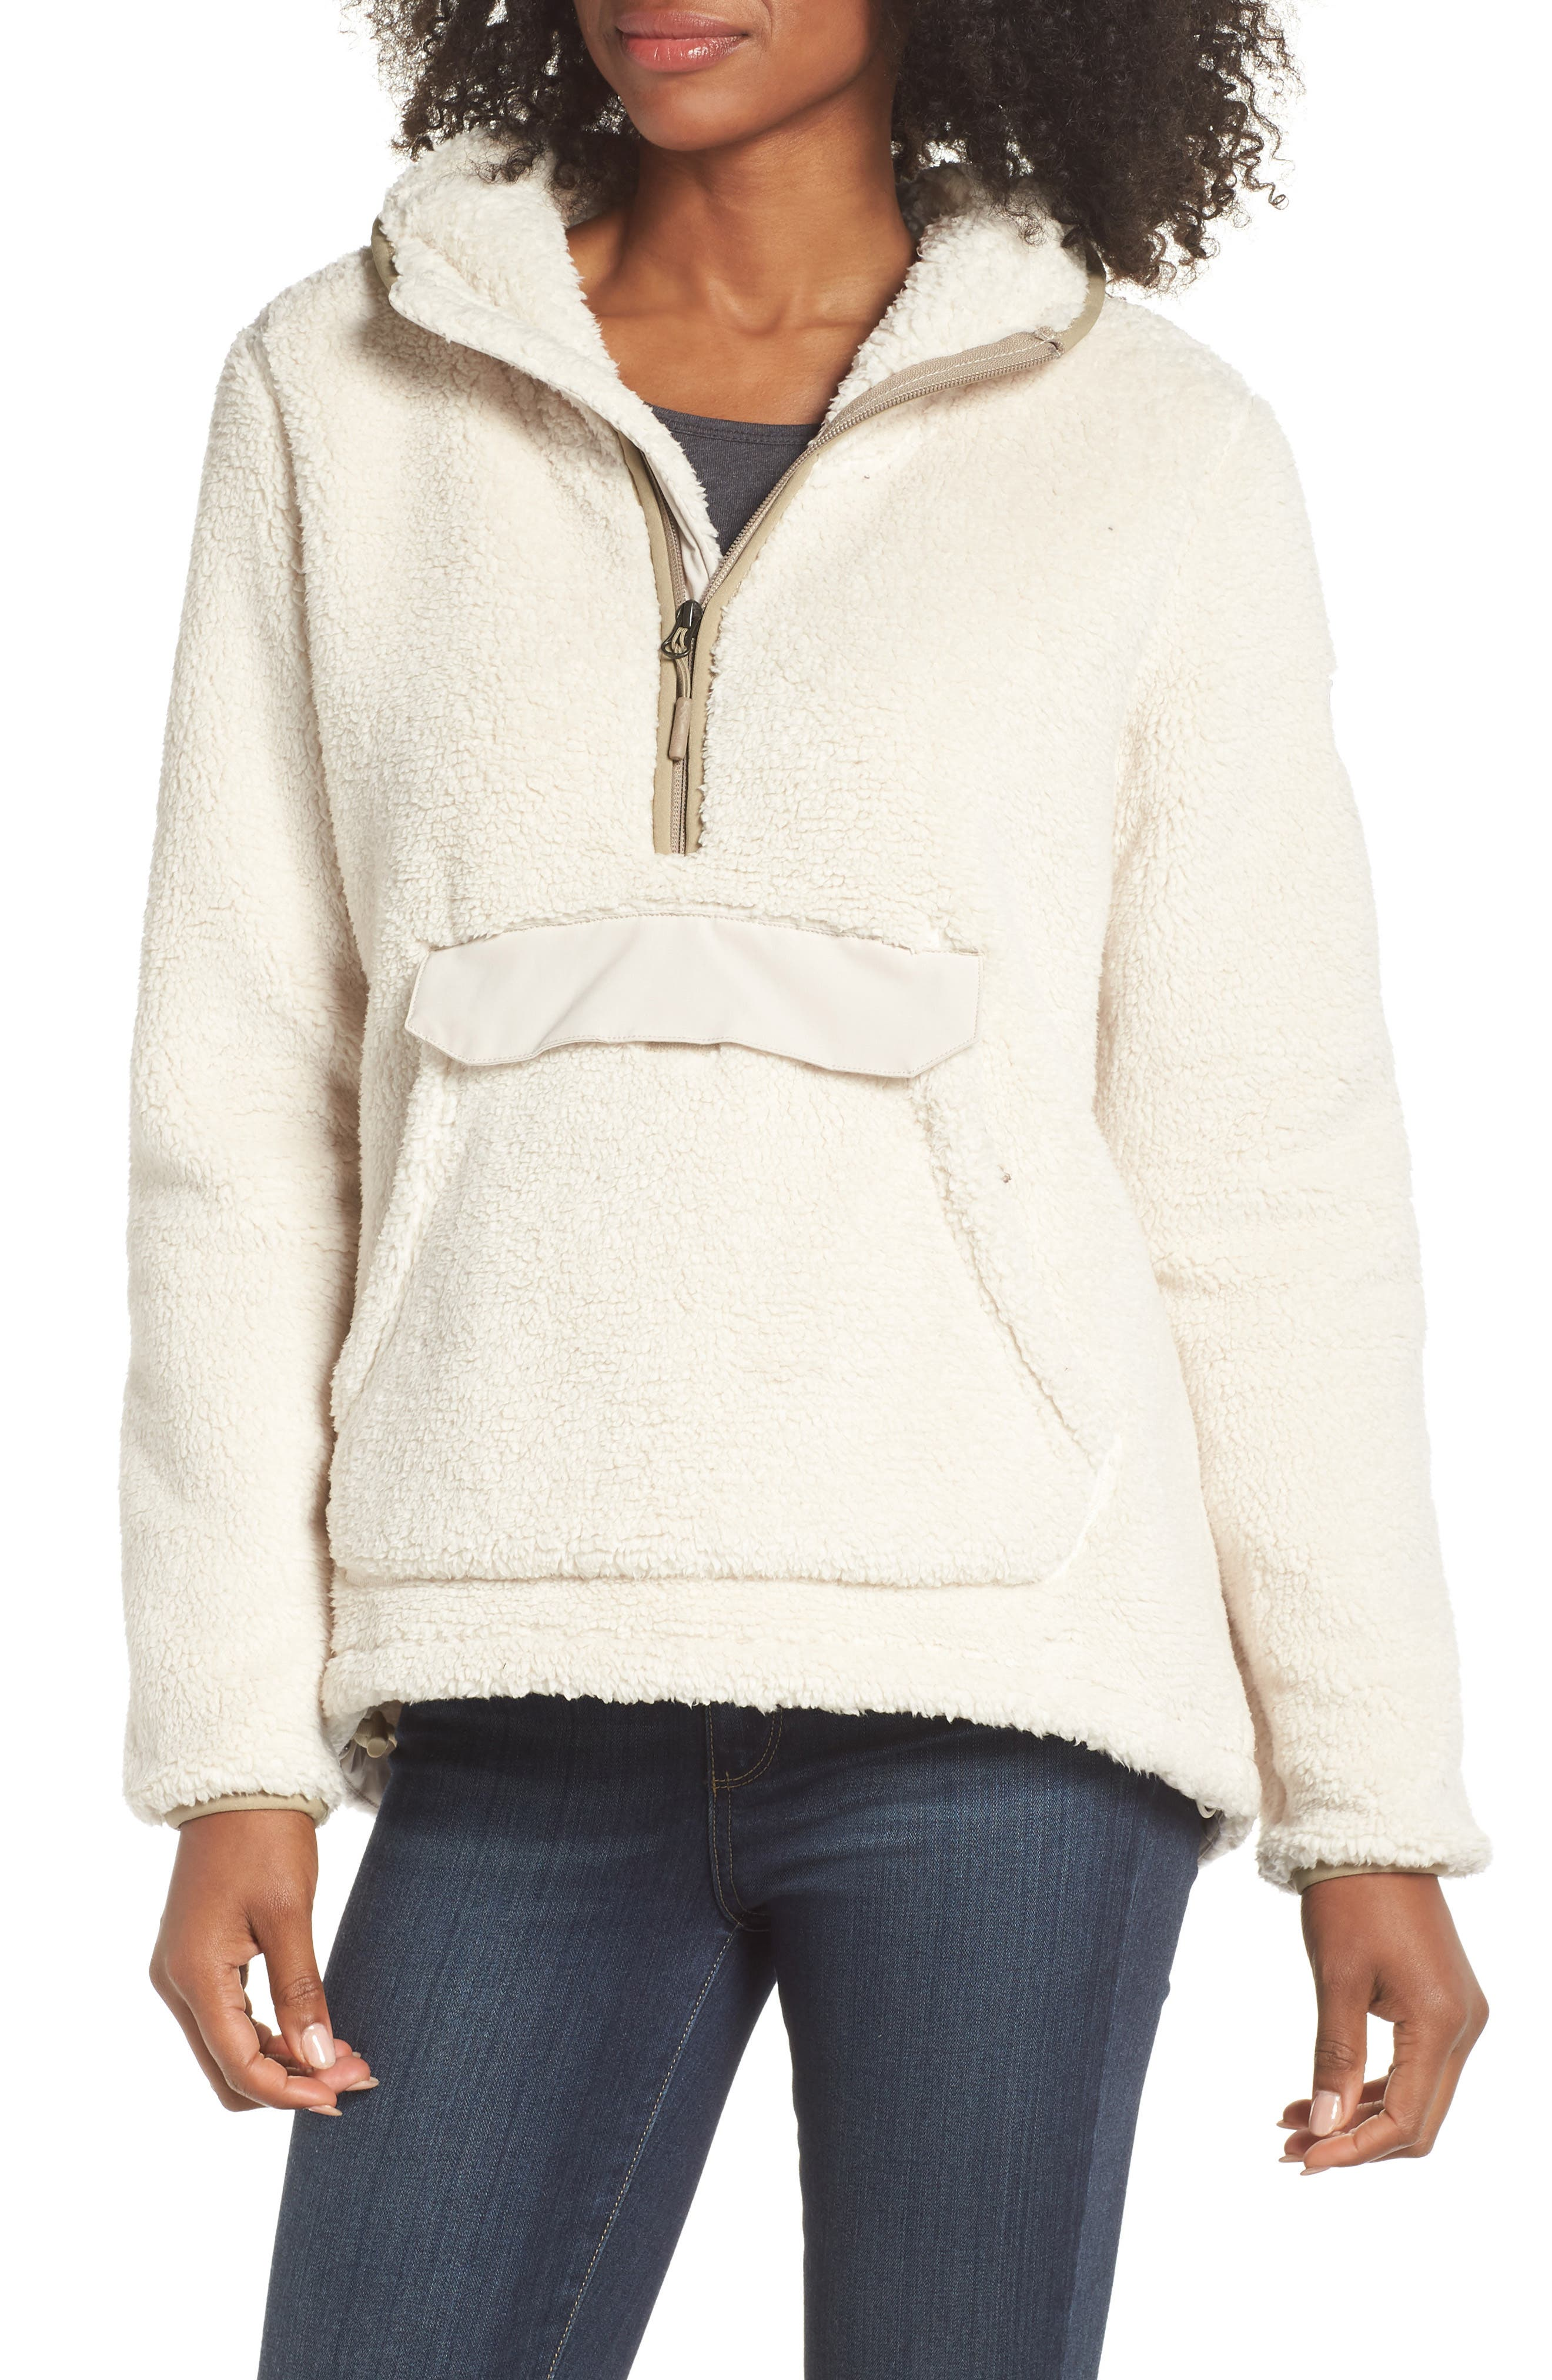 Campshire High Pile Fleece Pullover Hoodie,                             Main thumbnail 1, color,                             Vintage White/ Peyote Beige